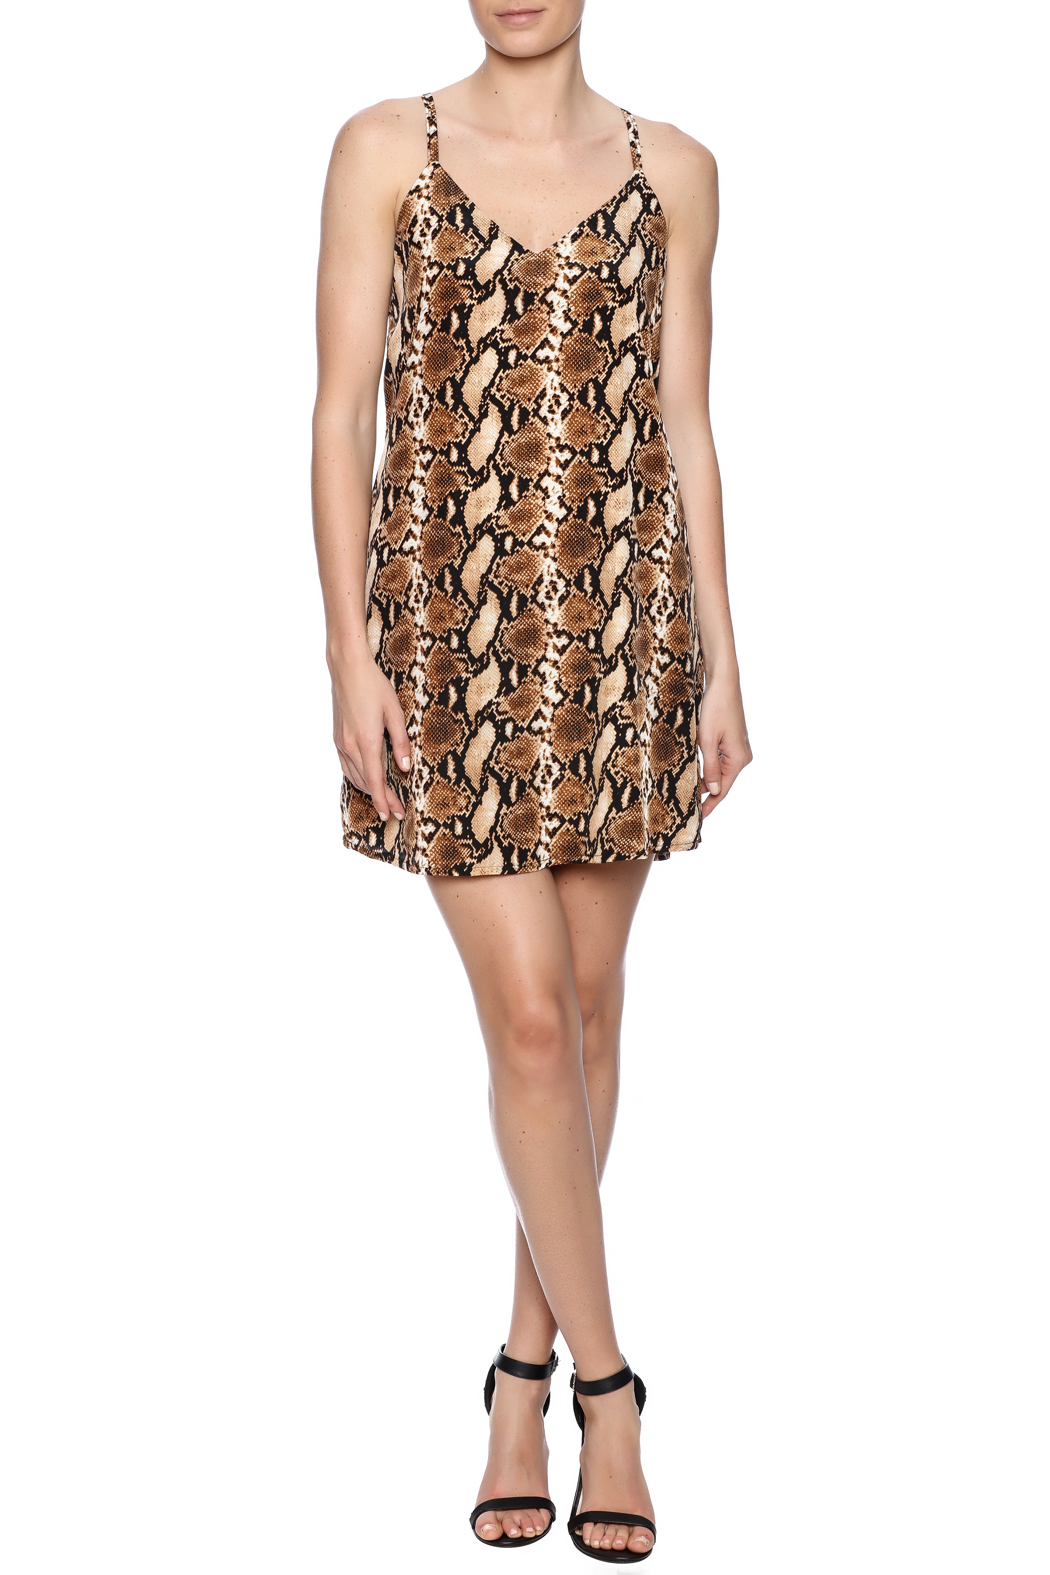 Judith March Snakeskin Shift Dress - Front Full Image